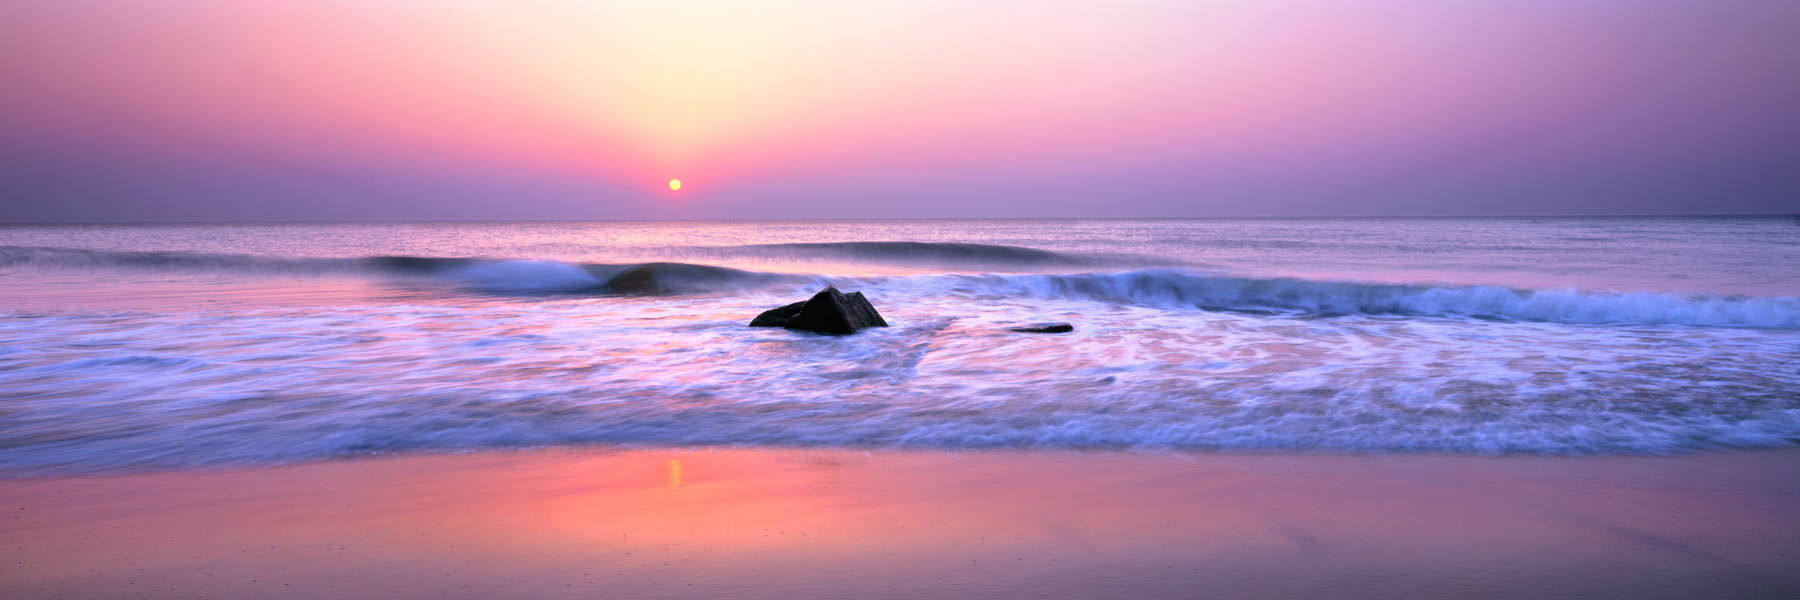 The rising sun, diffused by cloud, casting a magical pastel glow over Bethany Beach, Delaware, USA.